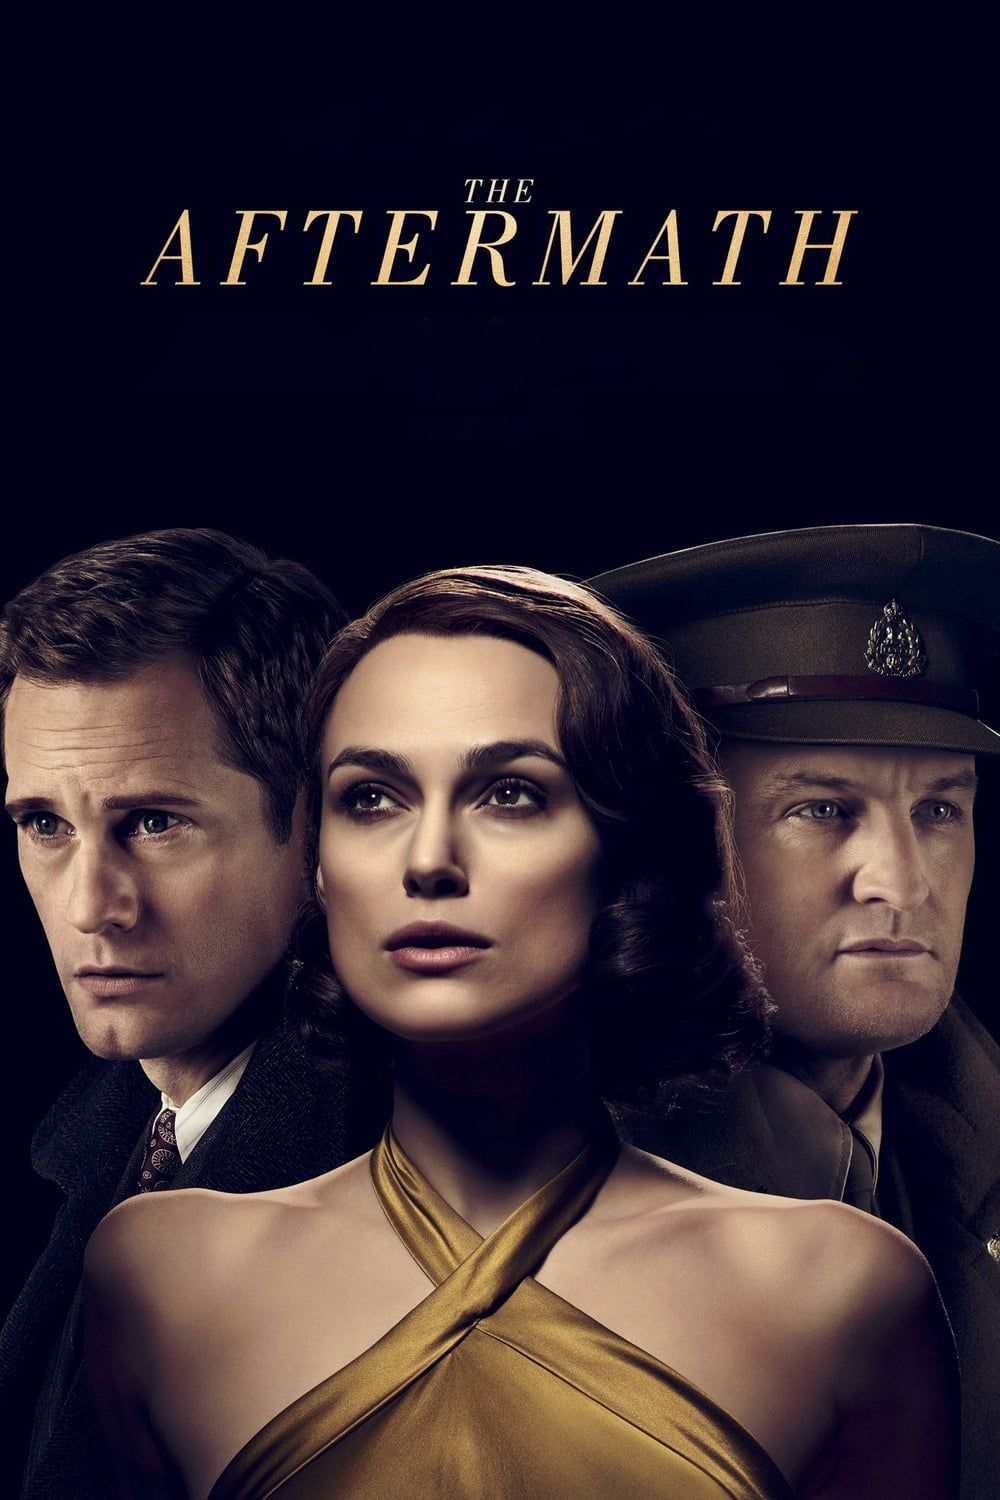 Mega Hd The Aftermath Pelicula Completa 2019 Online Espanol Latino Free Movies Online Full Movies Online Free Free Movies